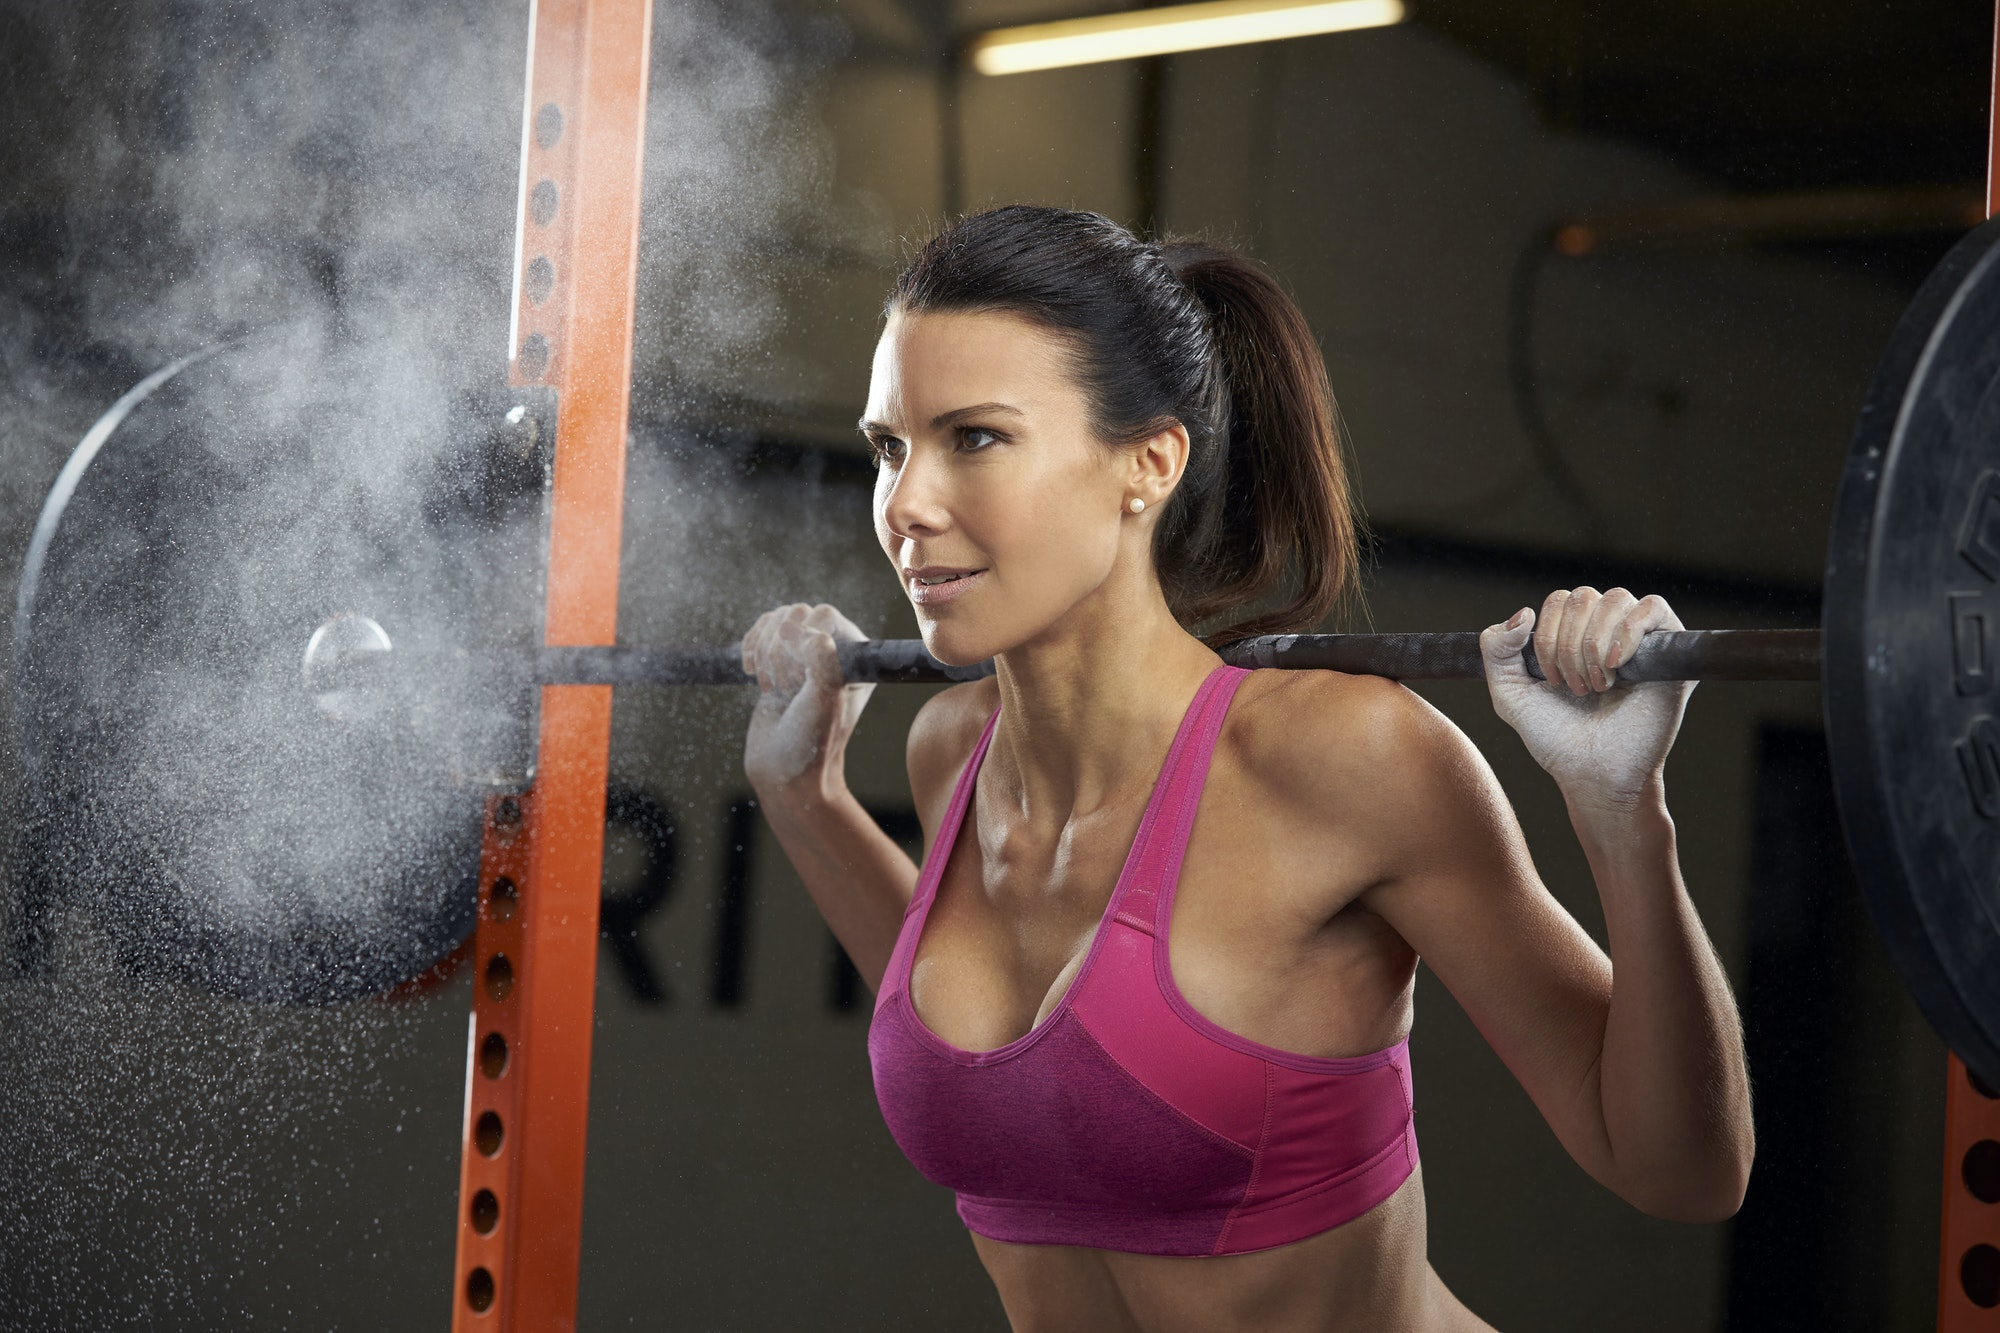 Woman In Gym Lifting Weights On Barbell